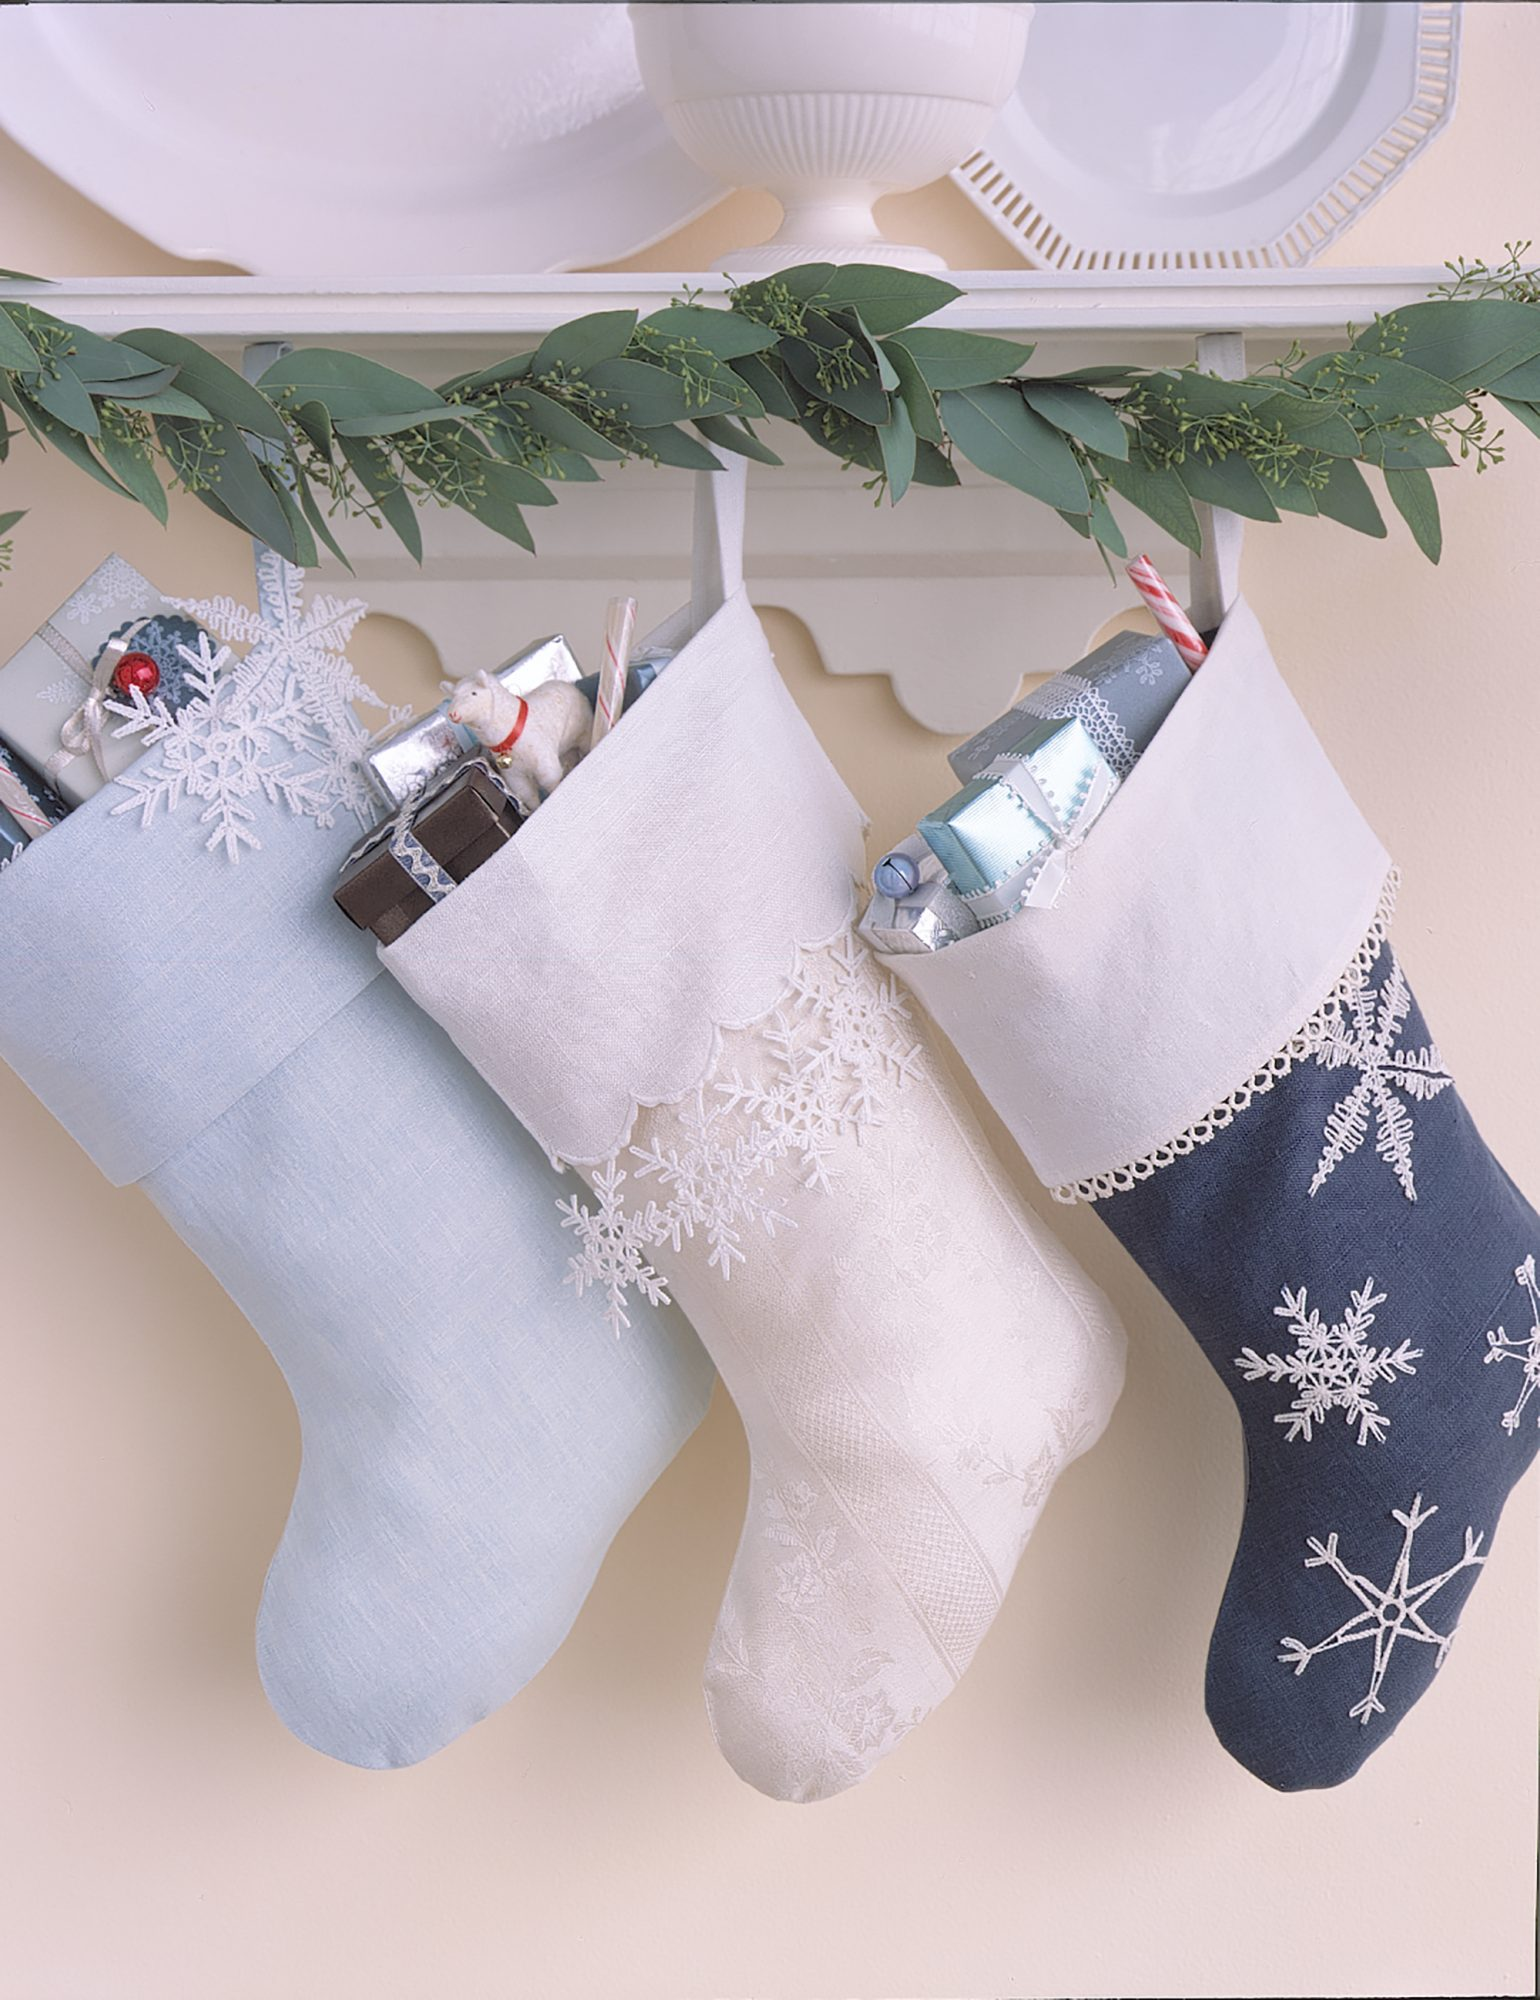 Stockings on a Mantel